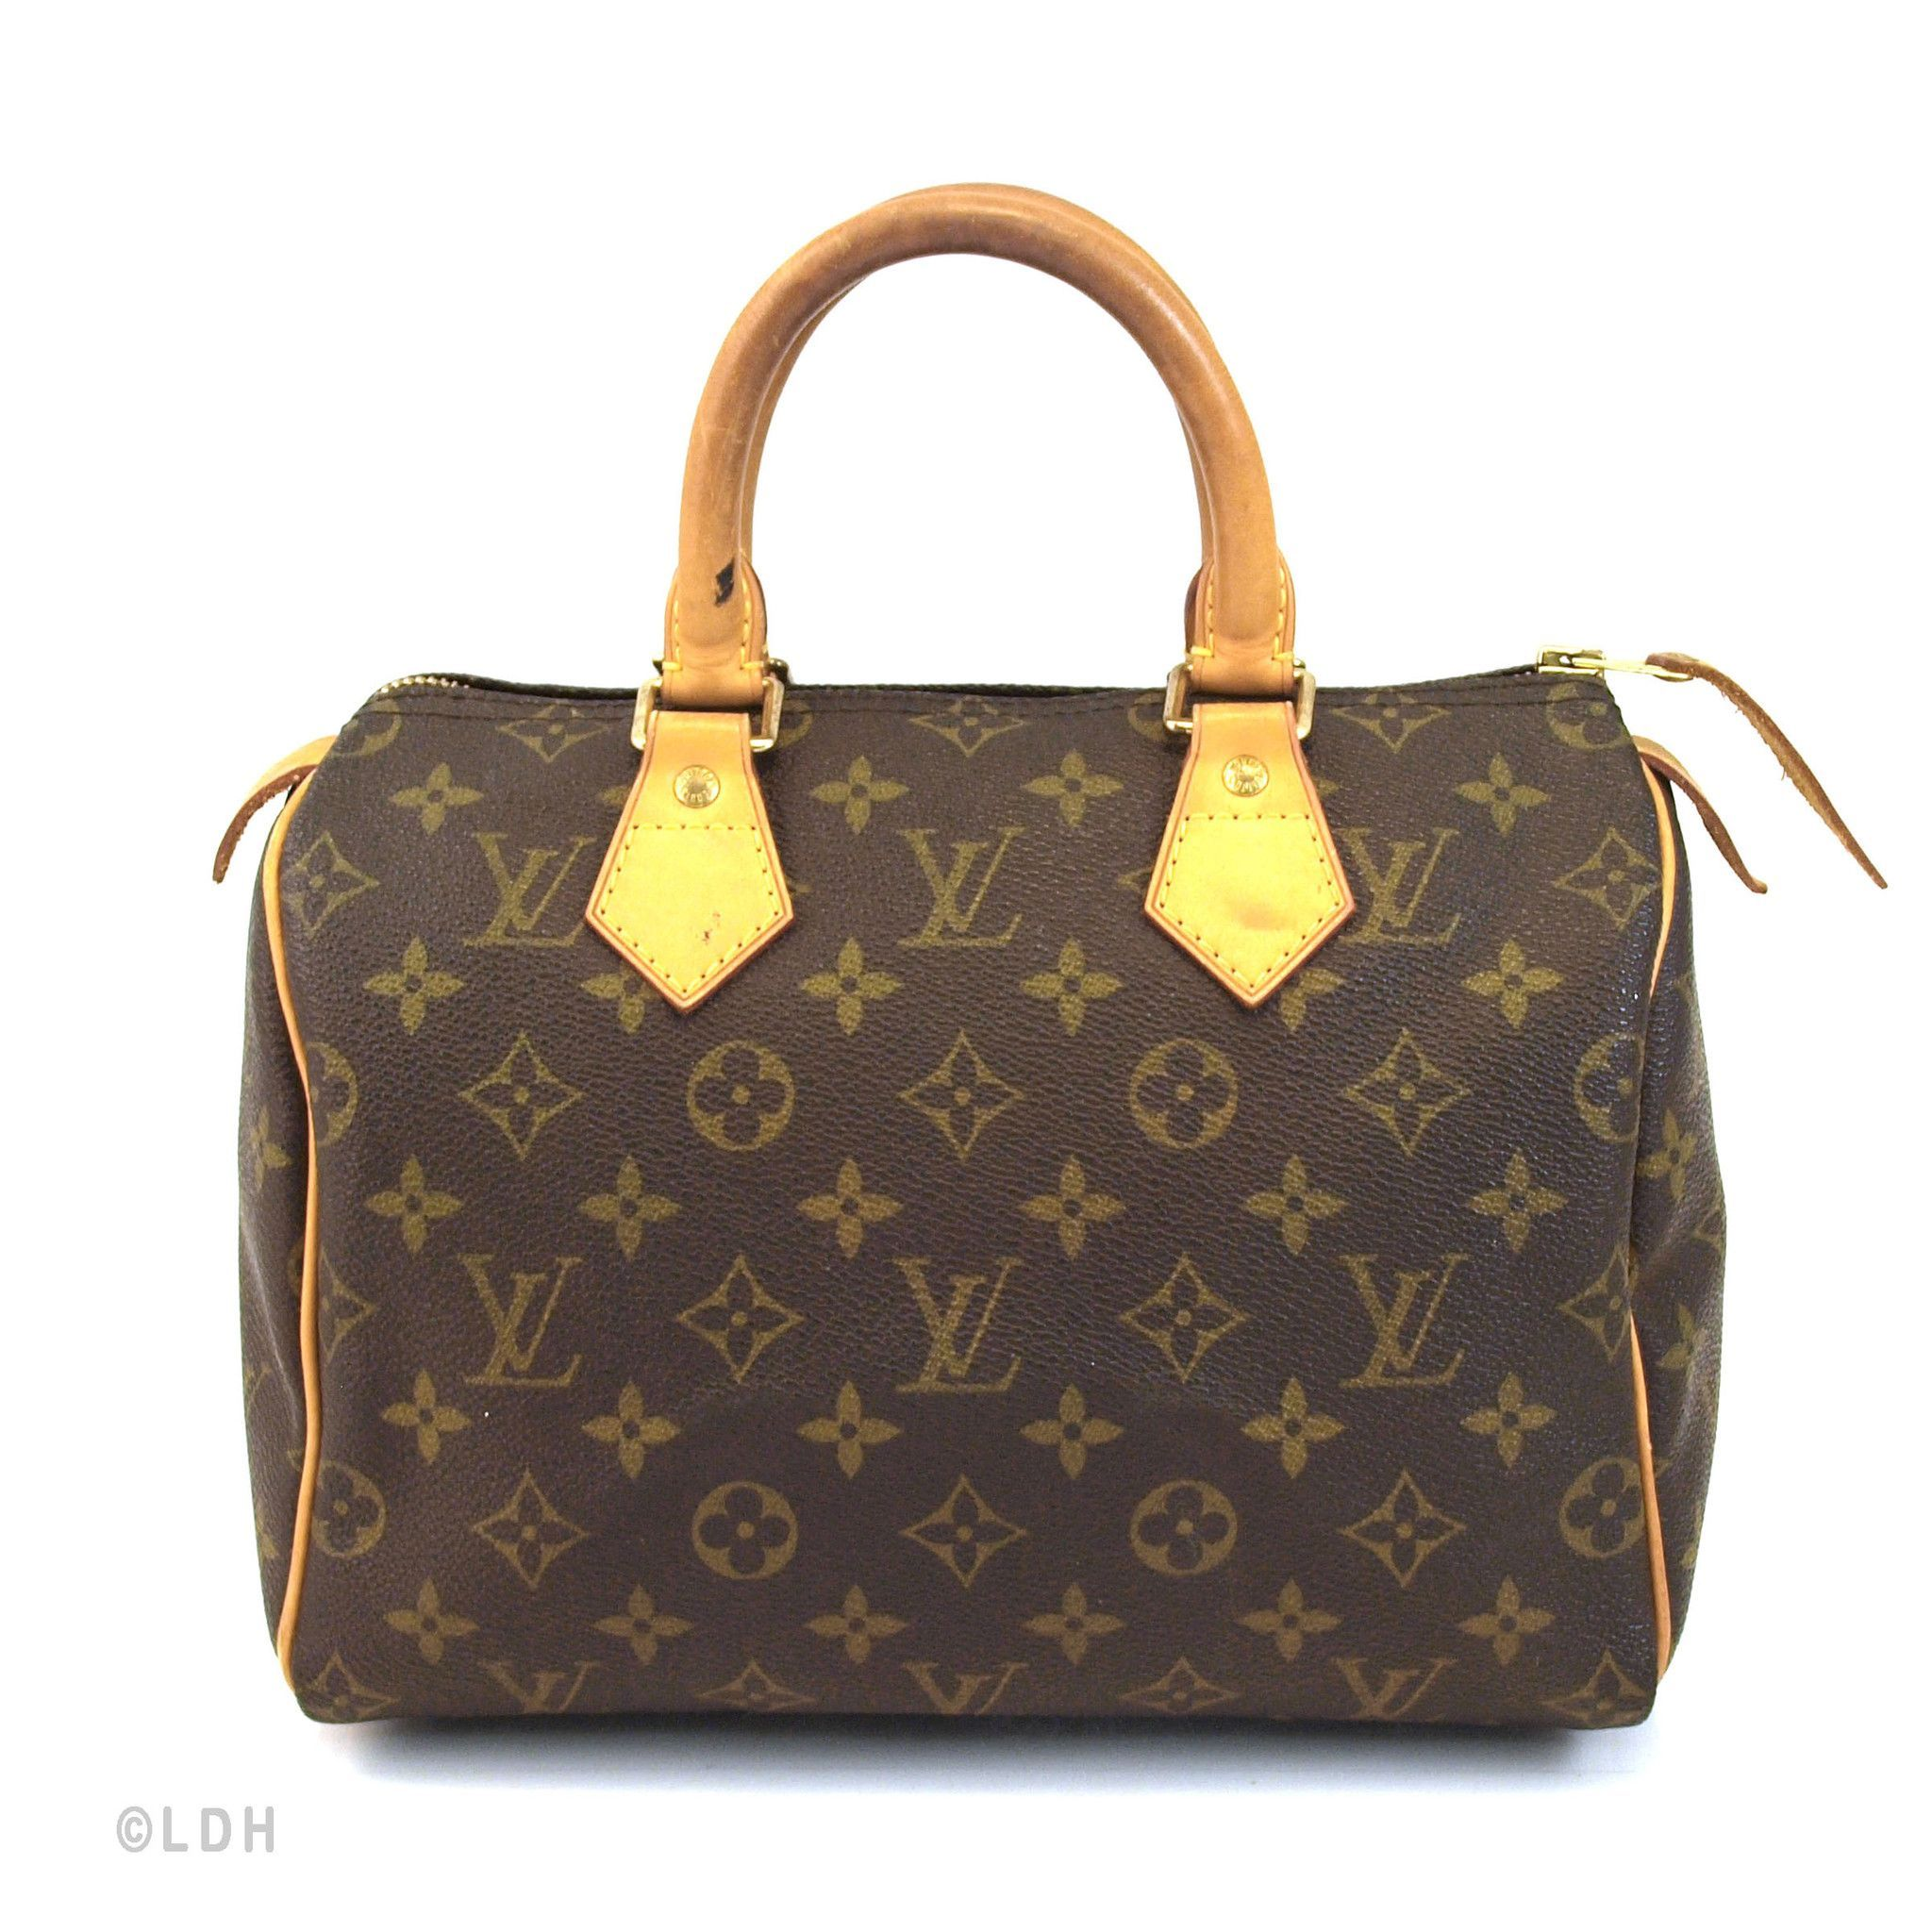 Louis Vuitton Sdy 25 Authentic Pre Owned